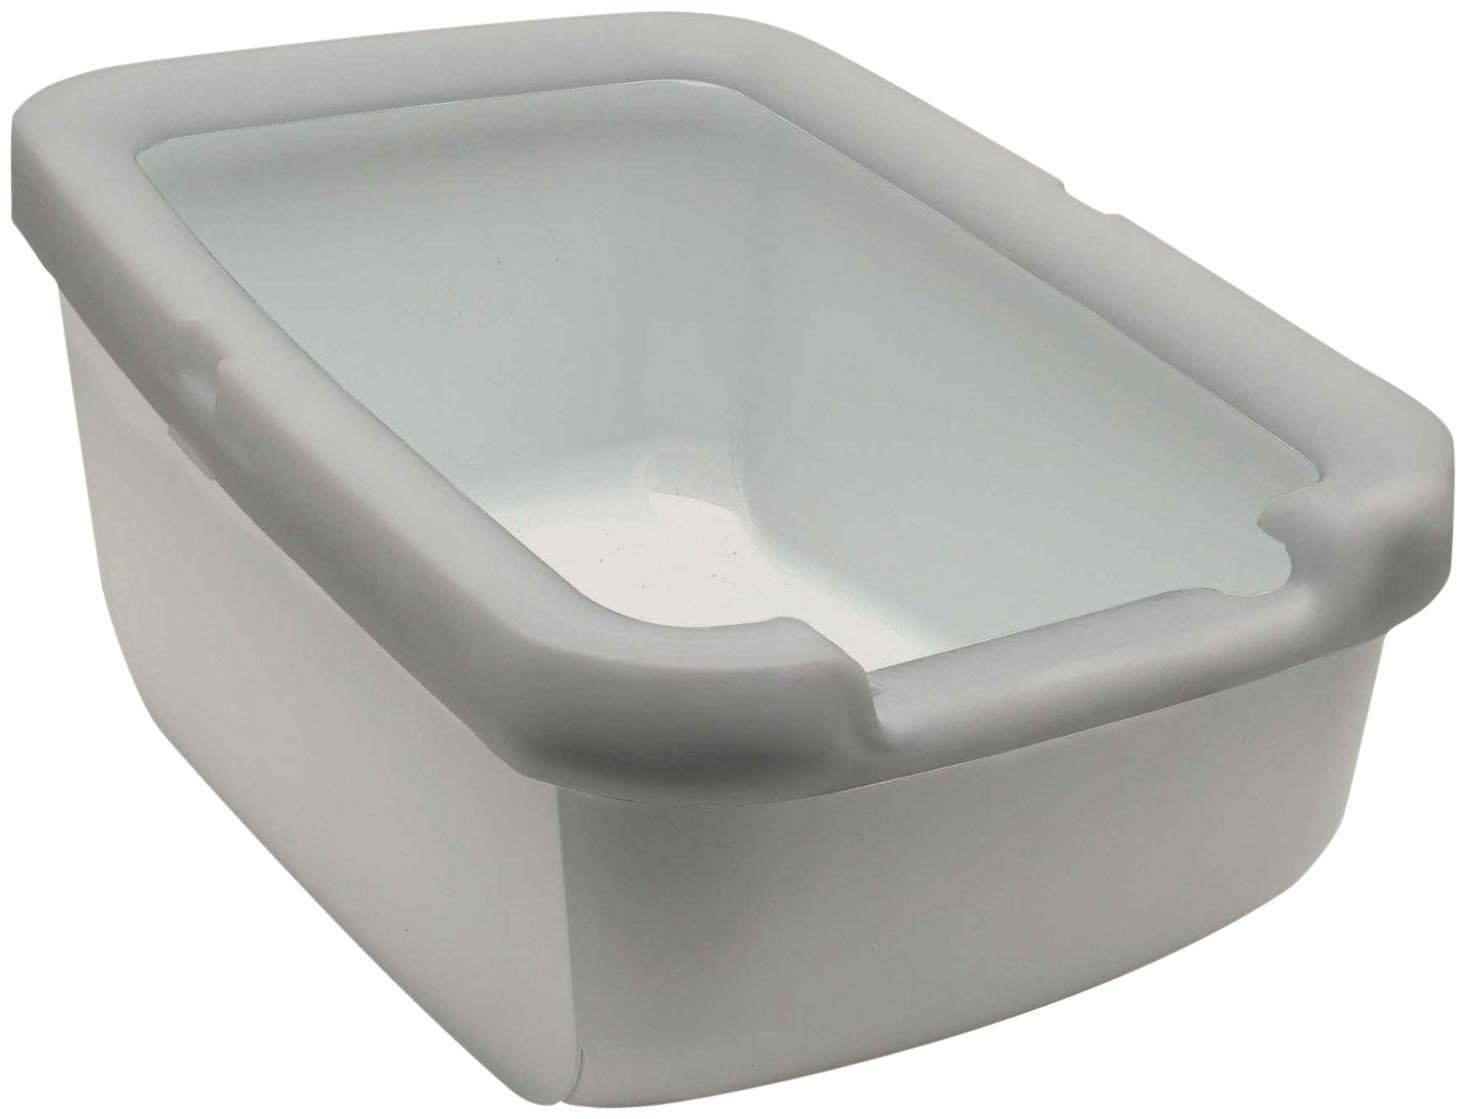 Catit Cat Litter Pan with Rim, Taupe by Catit